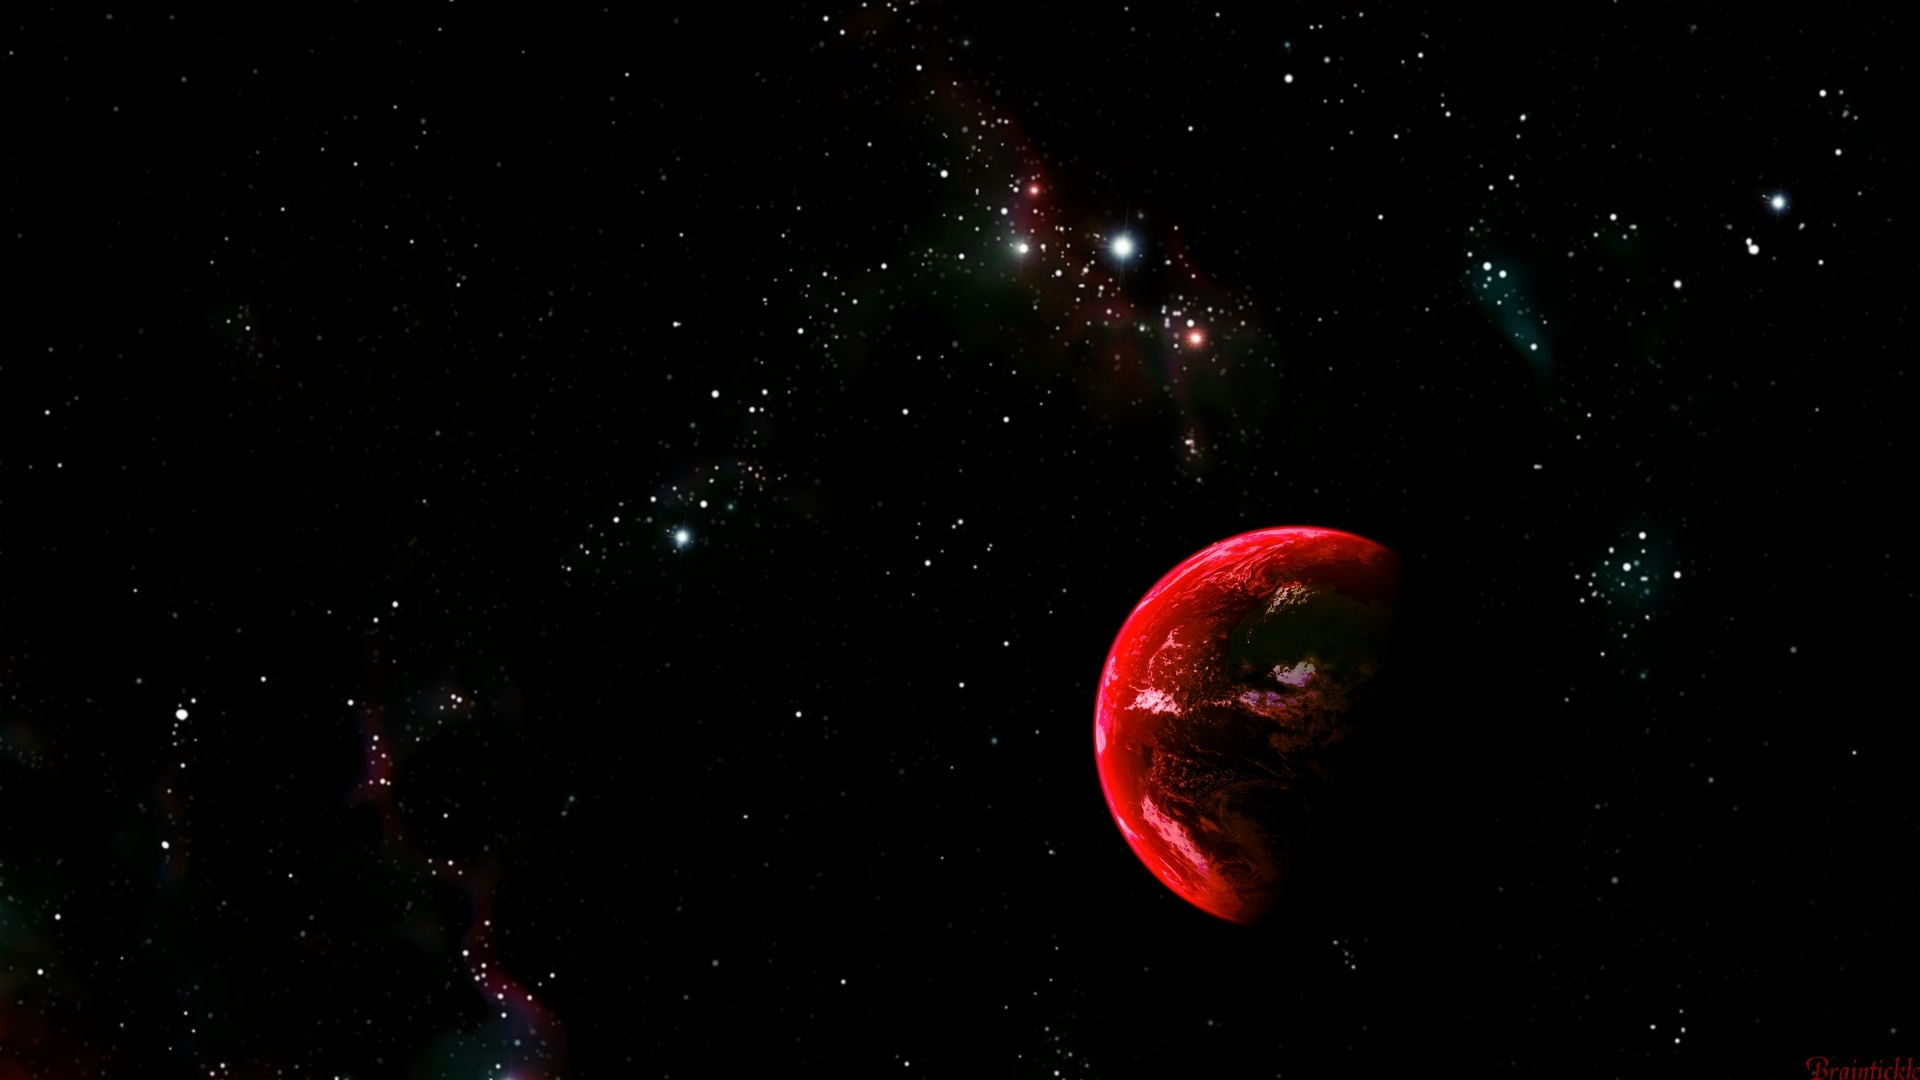 Red Earth with Stars & Nebula Wallpaper (1080p) Fond d